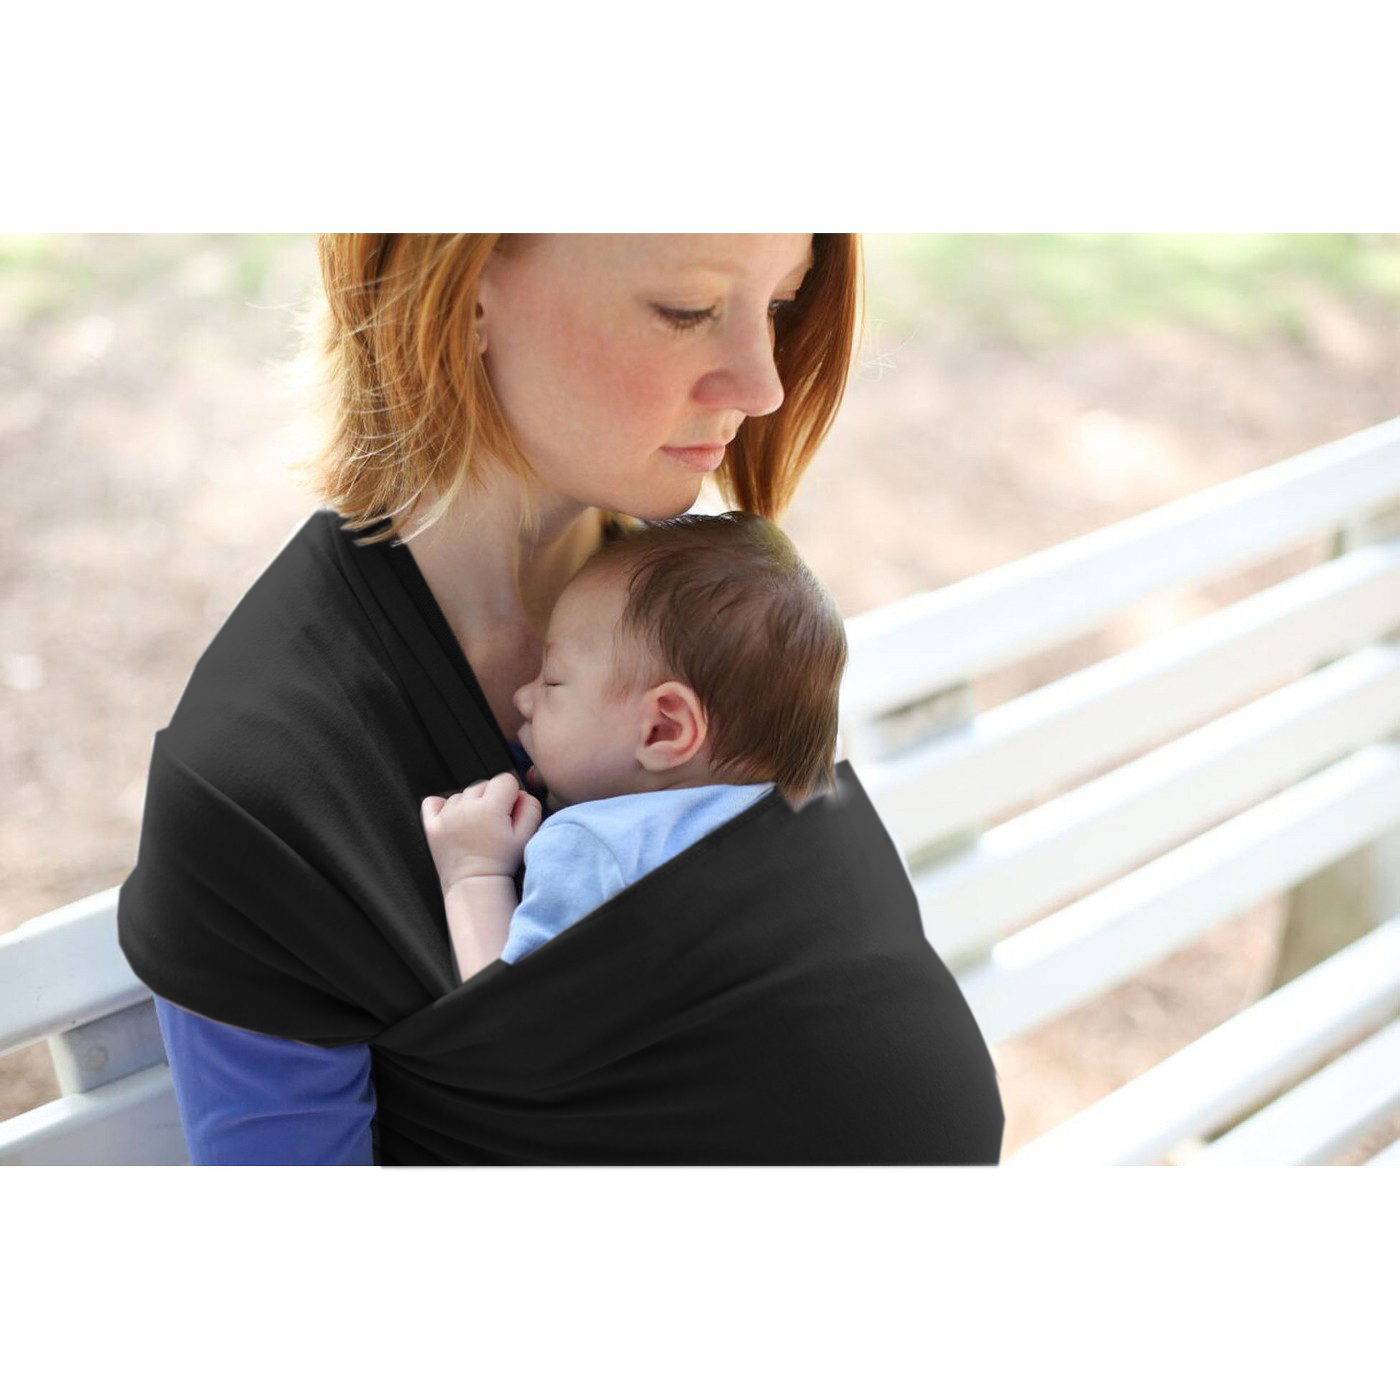 Soft cotton baby carrier baby wrap  baby sling soft  carrier baby wrap  nursing Cover Great Baby  Gift-Black colors